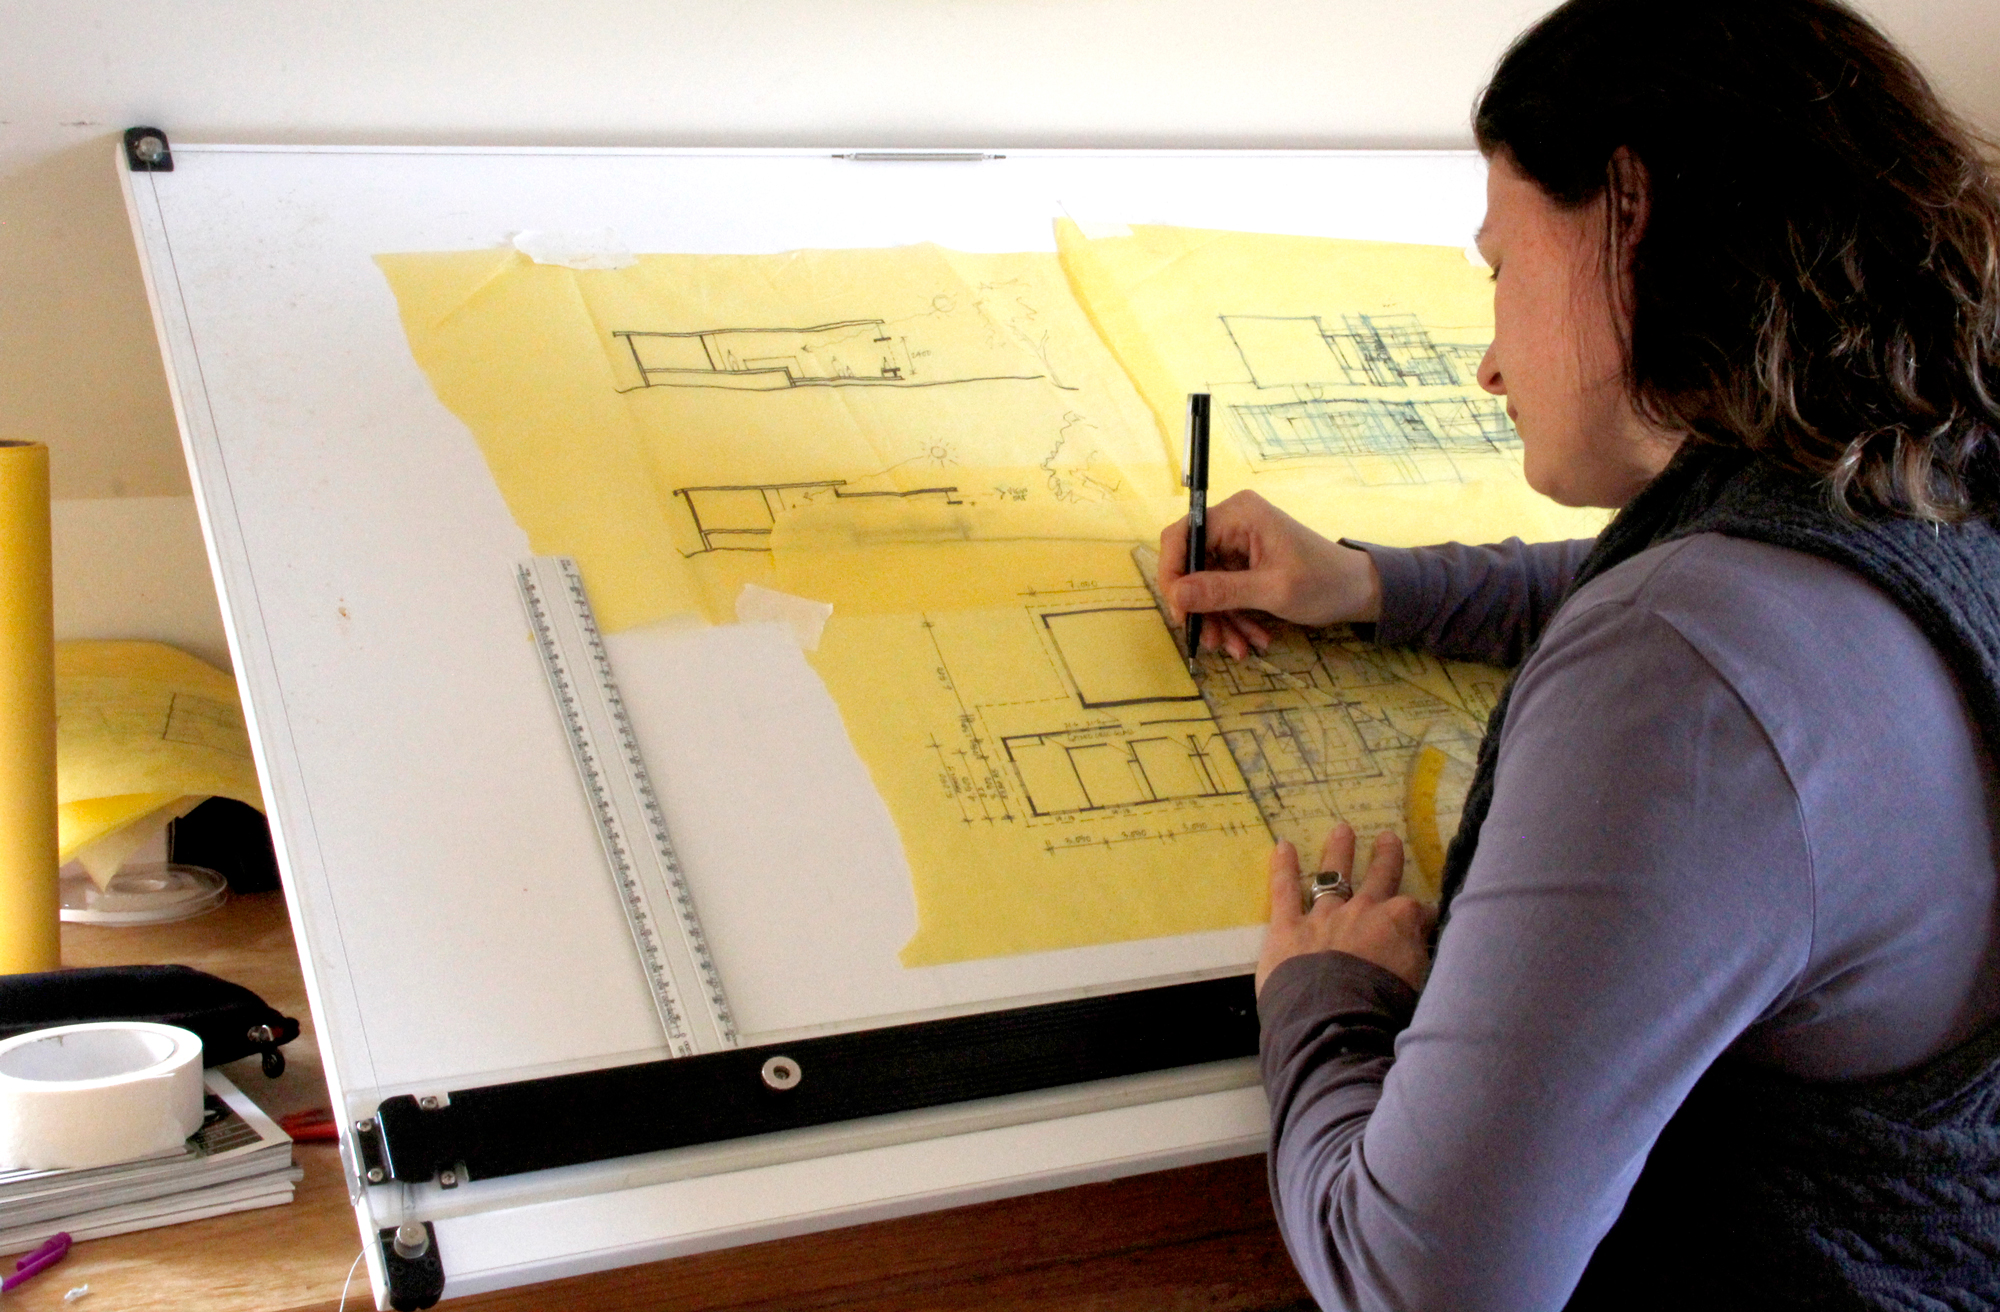 a profession profile architects This is commonly taken in architects' practices, but may be in any sector of the building industry, including construction and design, as long as the work is related to architecture and is supervised by a construction professional.